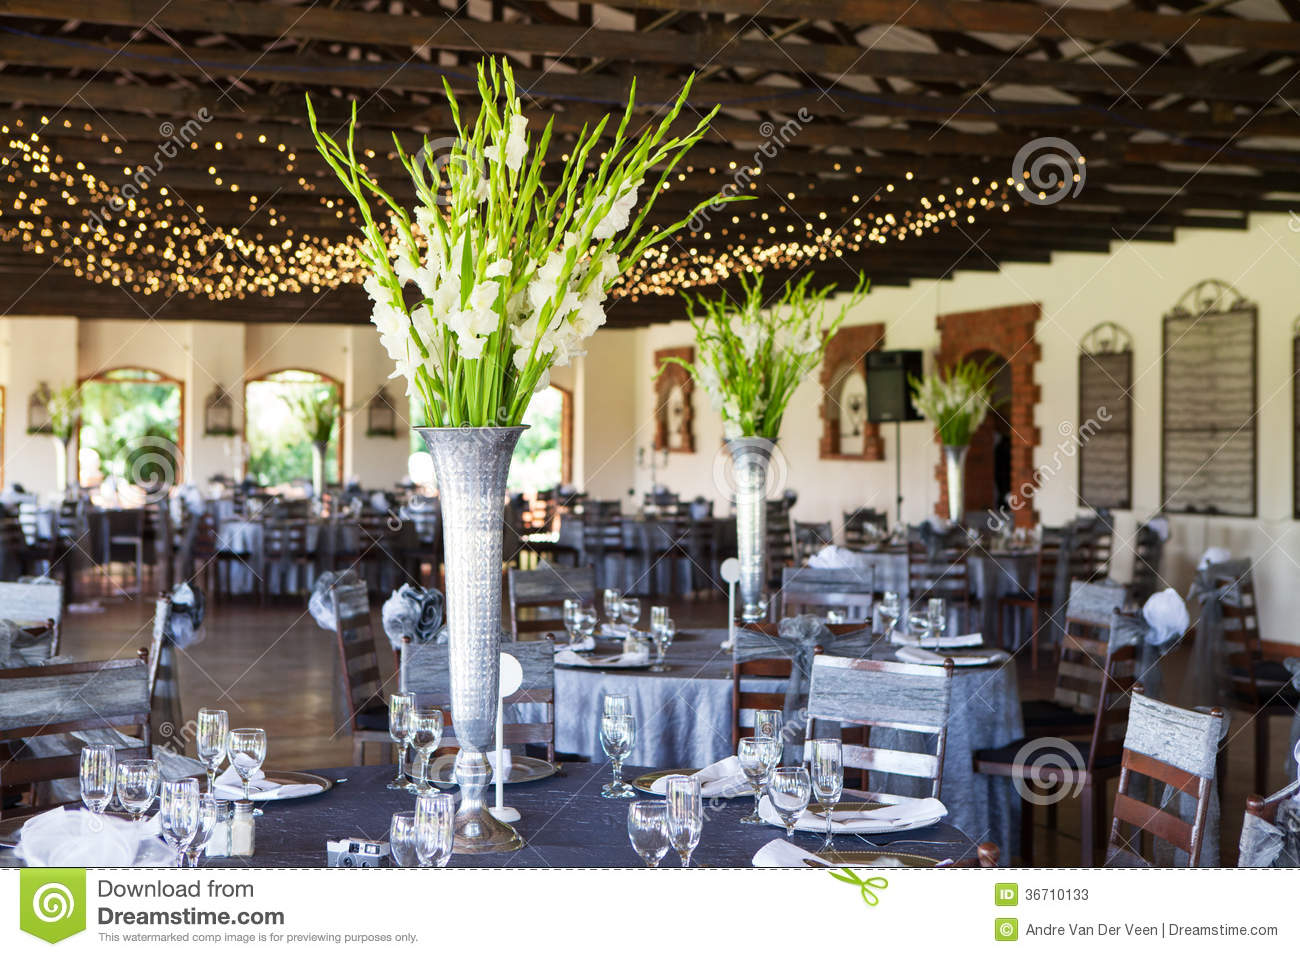 Wedding Reception Venue With Decorated Tables And Fairy